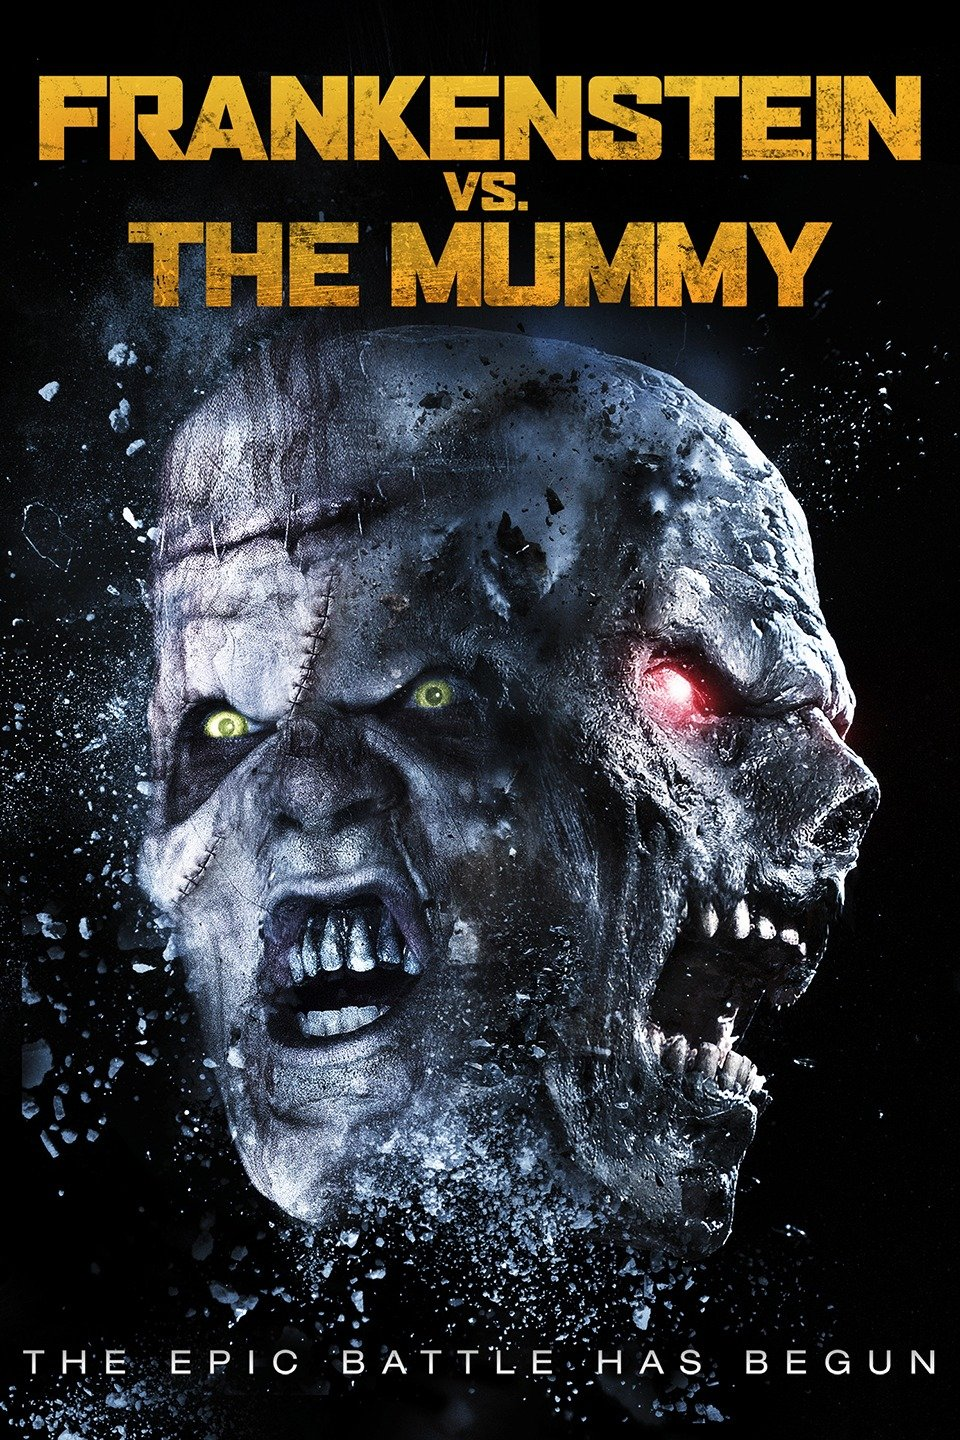 Frankenstein vs. The Mummy-Frankenstein vs. The Mummy